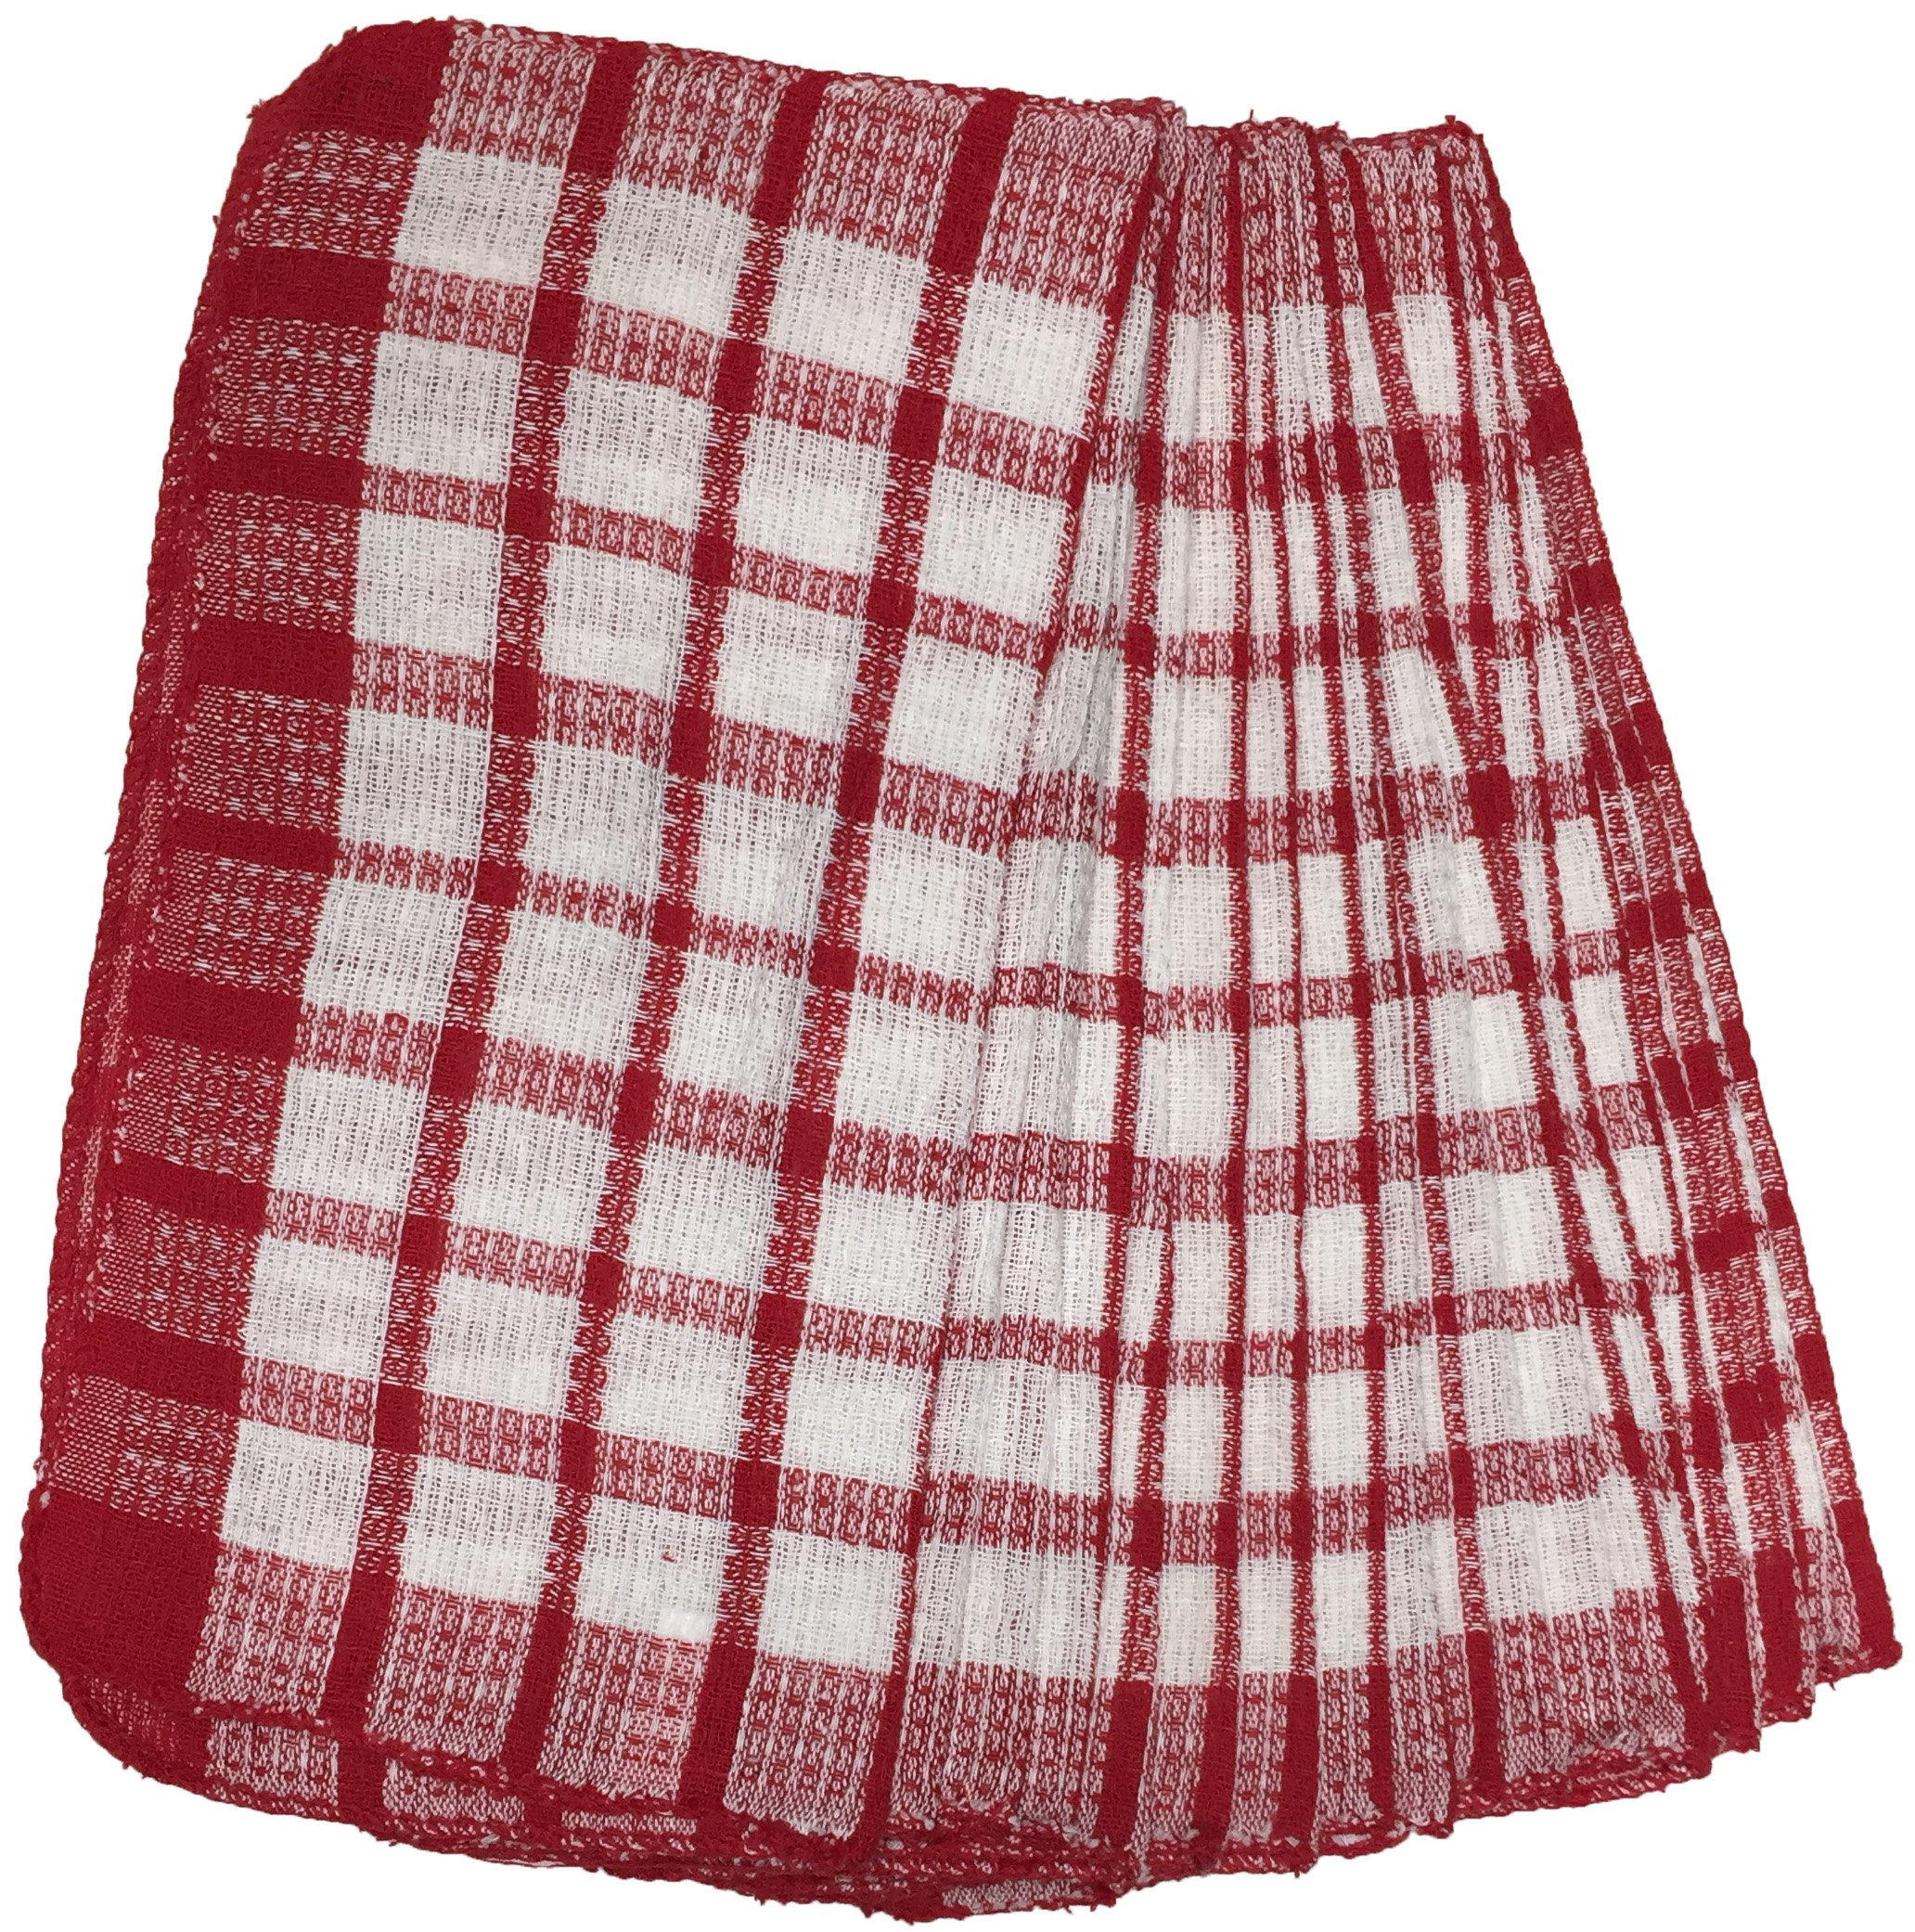 18 Pack Dish Cloths Size : 11'' x 11'' (Red)